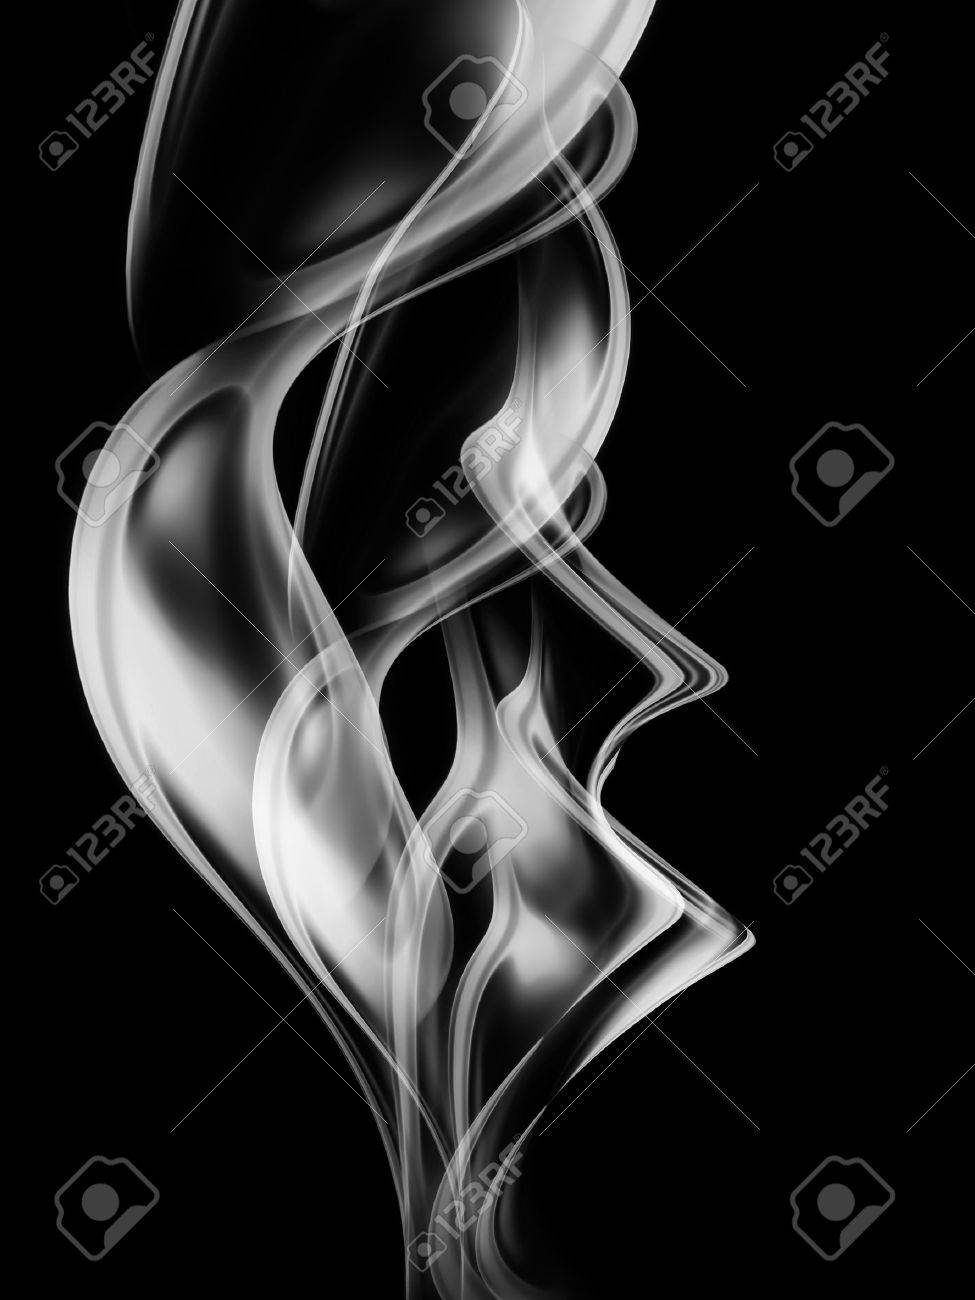 Monochrome background with abstract smoke Stock Photo - 22497626